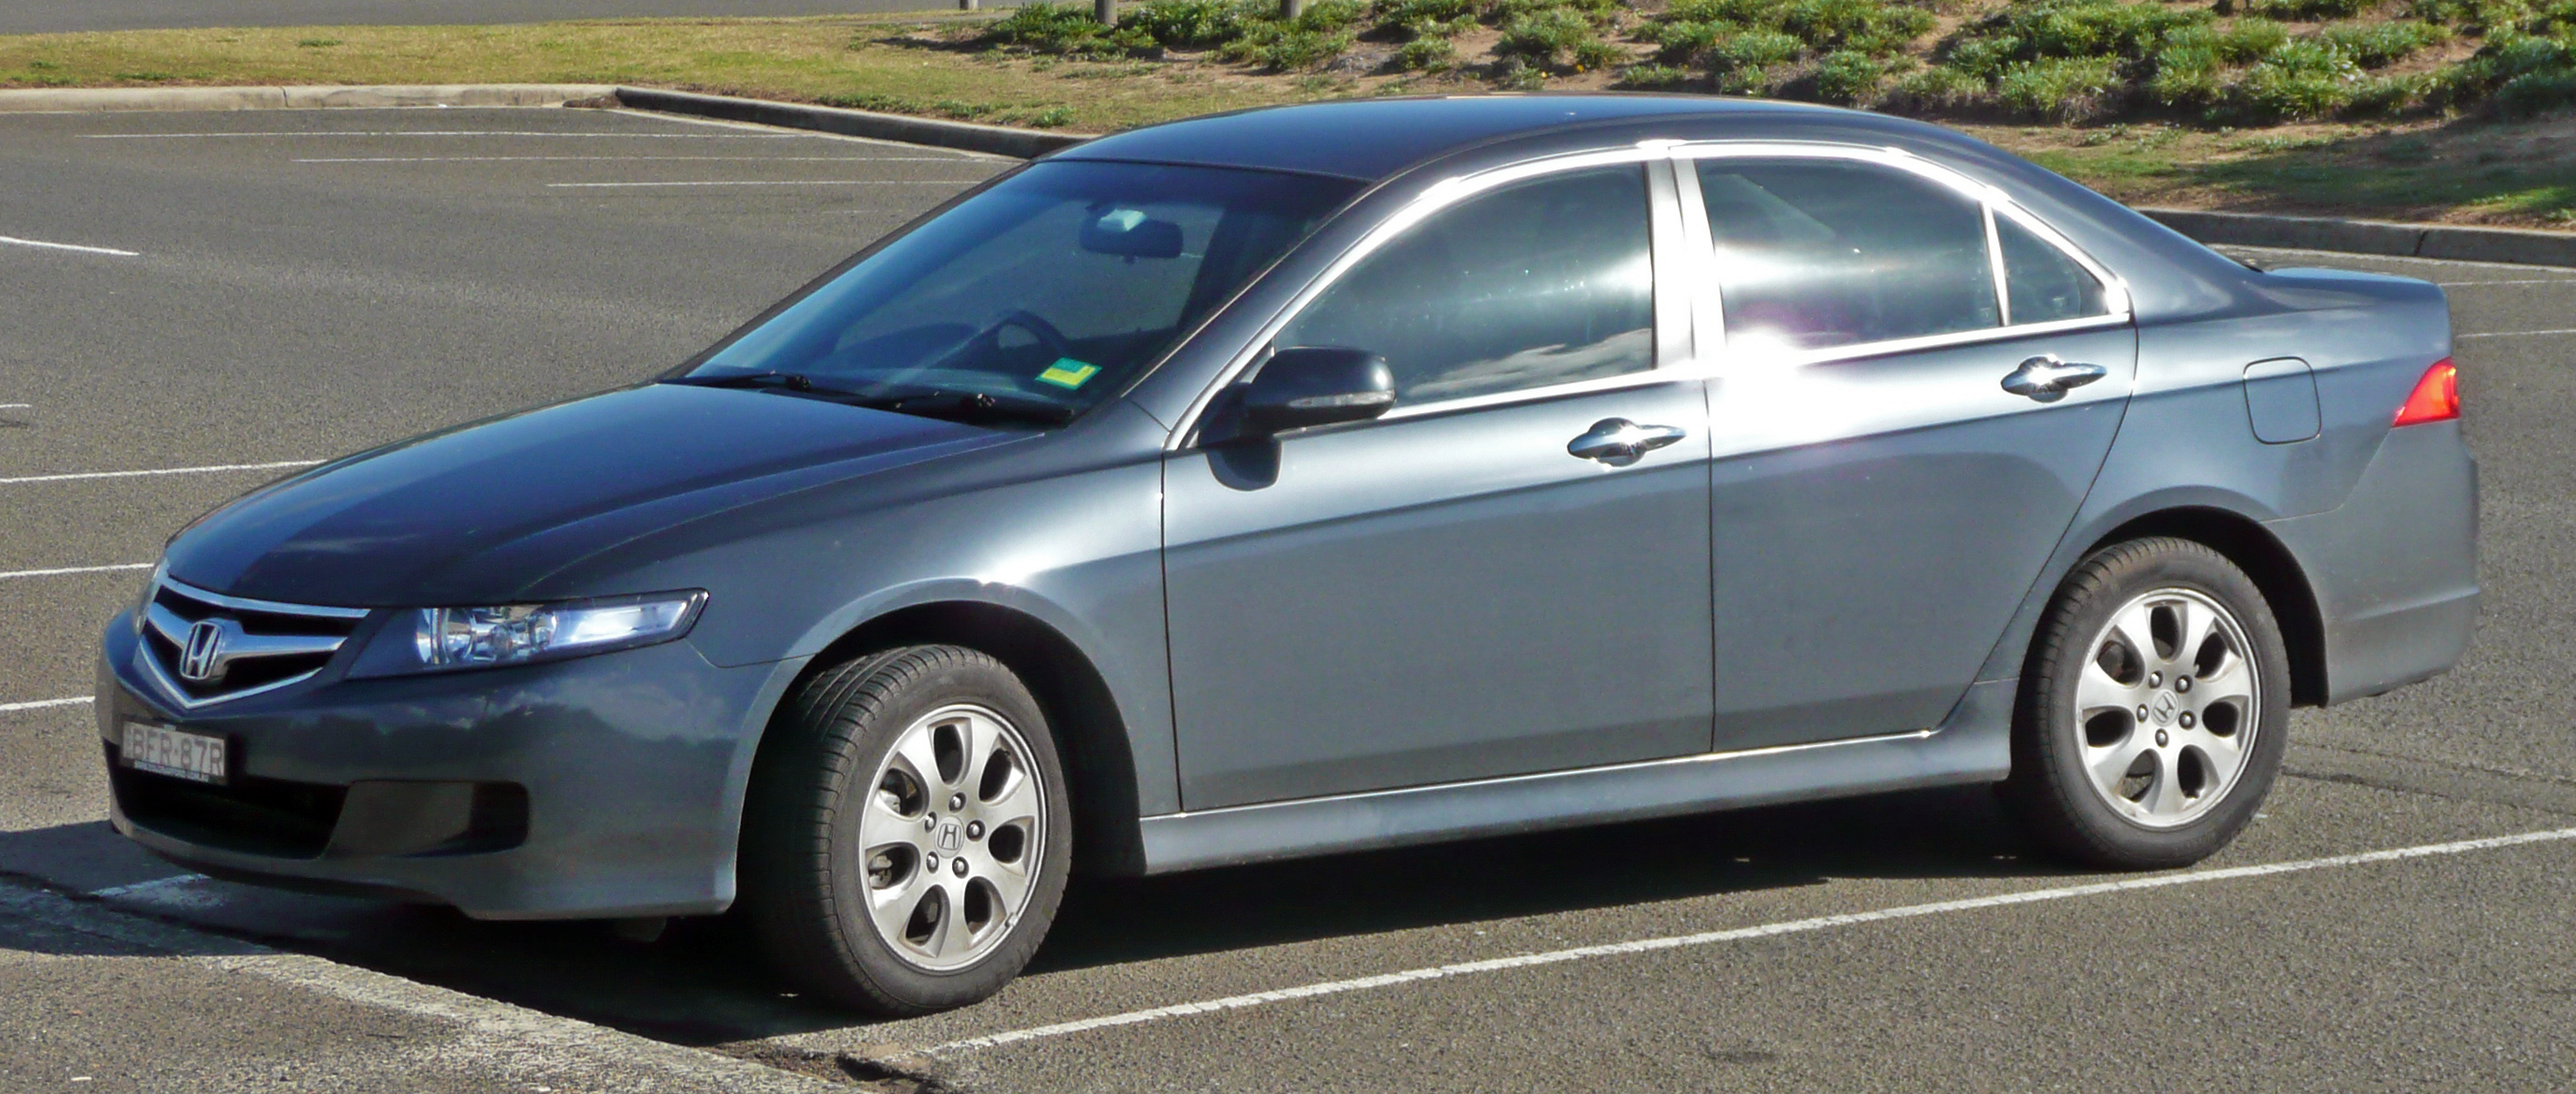 File:2005-2008 Honda Accord Euro sedan 01.jpg - Wikimedia ...